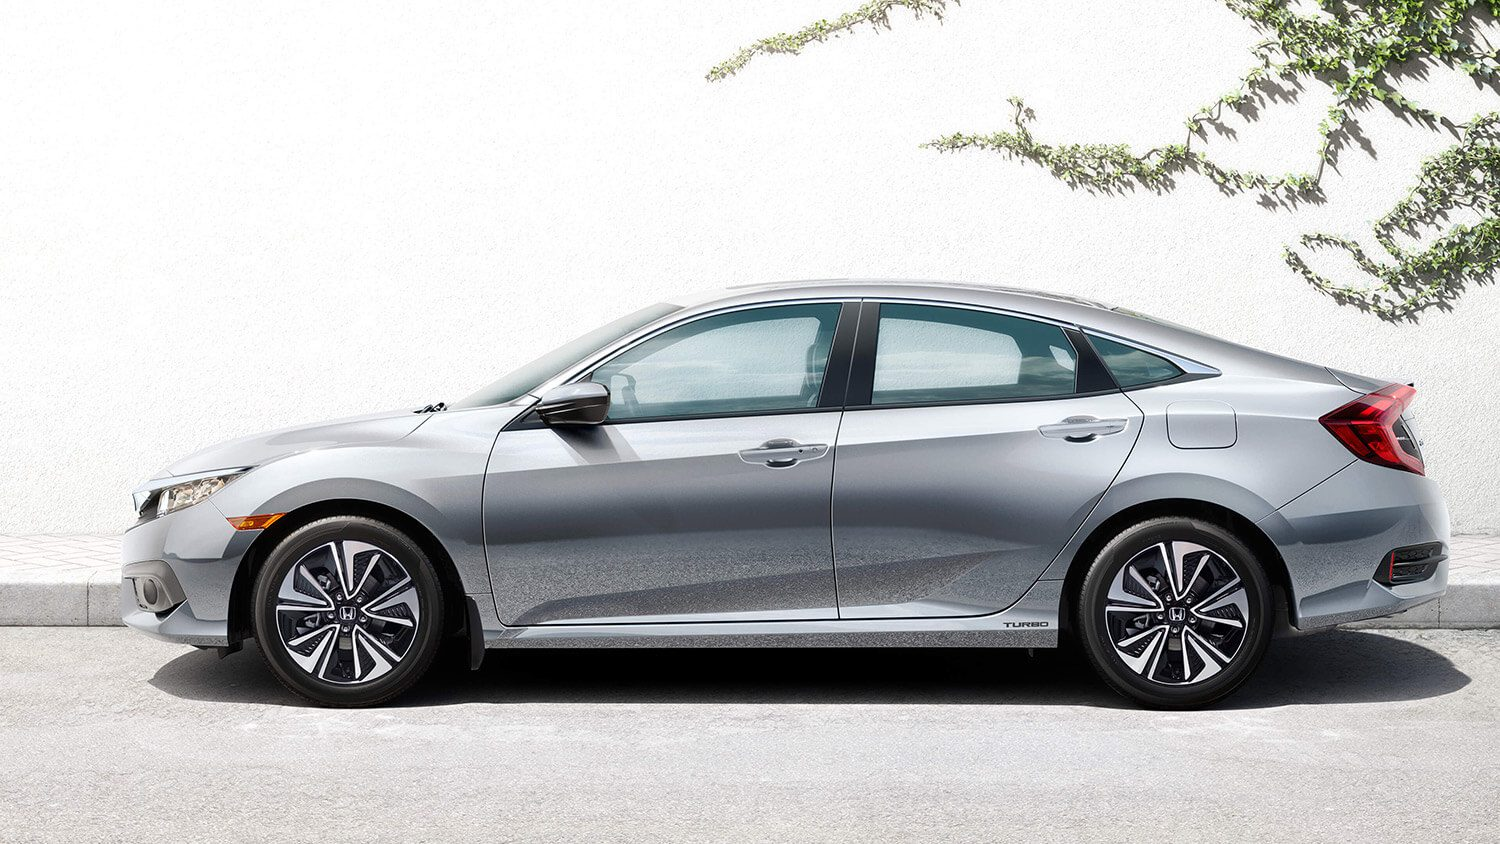 2018 Honda Civic at Pickering Honda